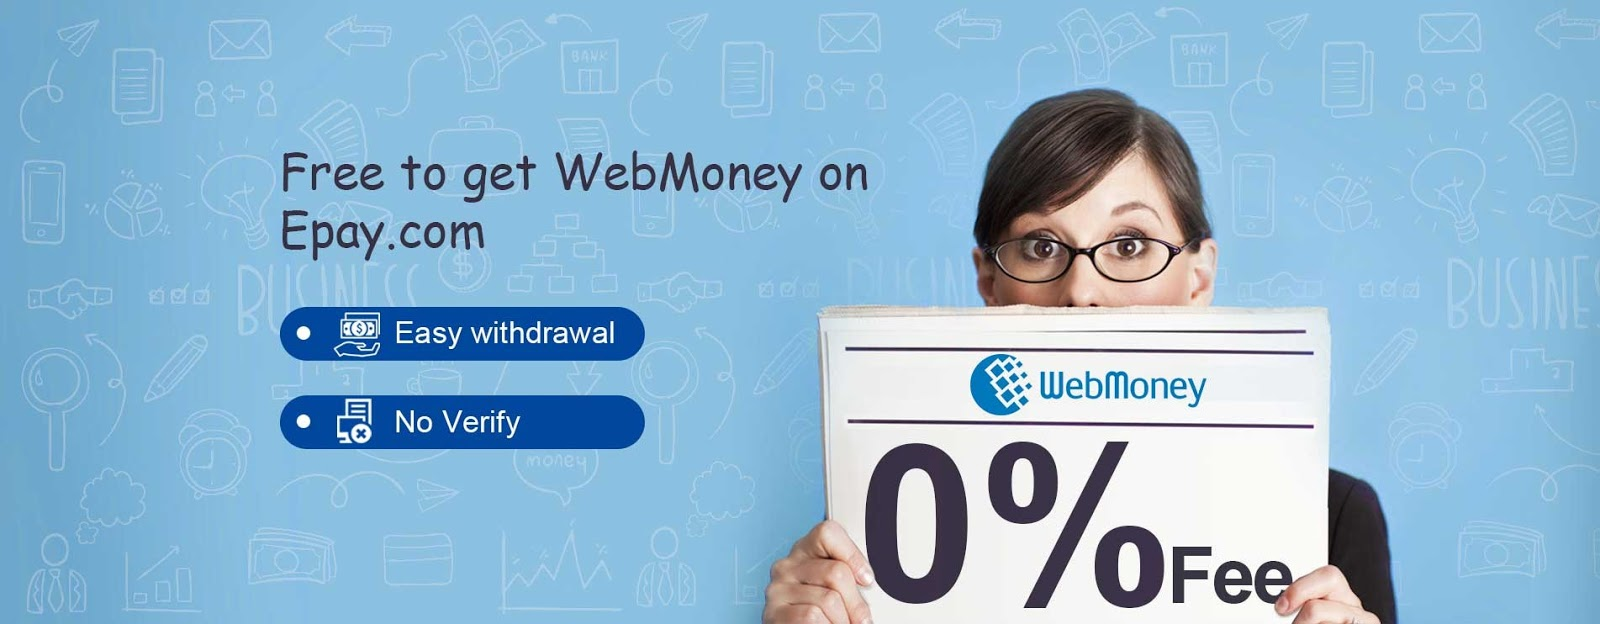 Beginners Guide to Exchange WebMoney from Epay.com